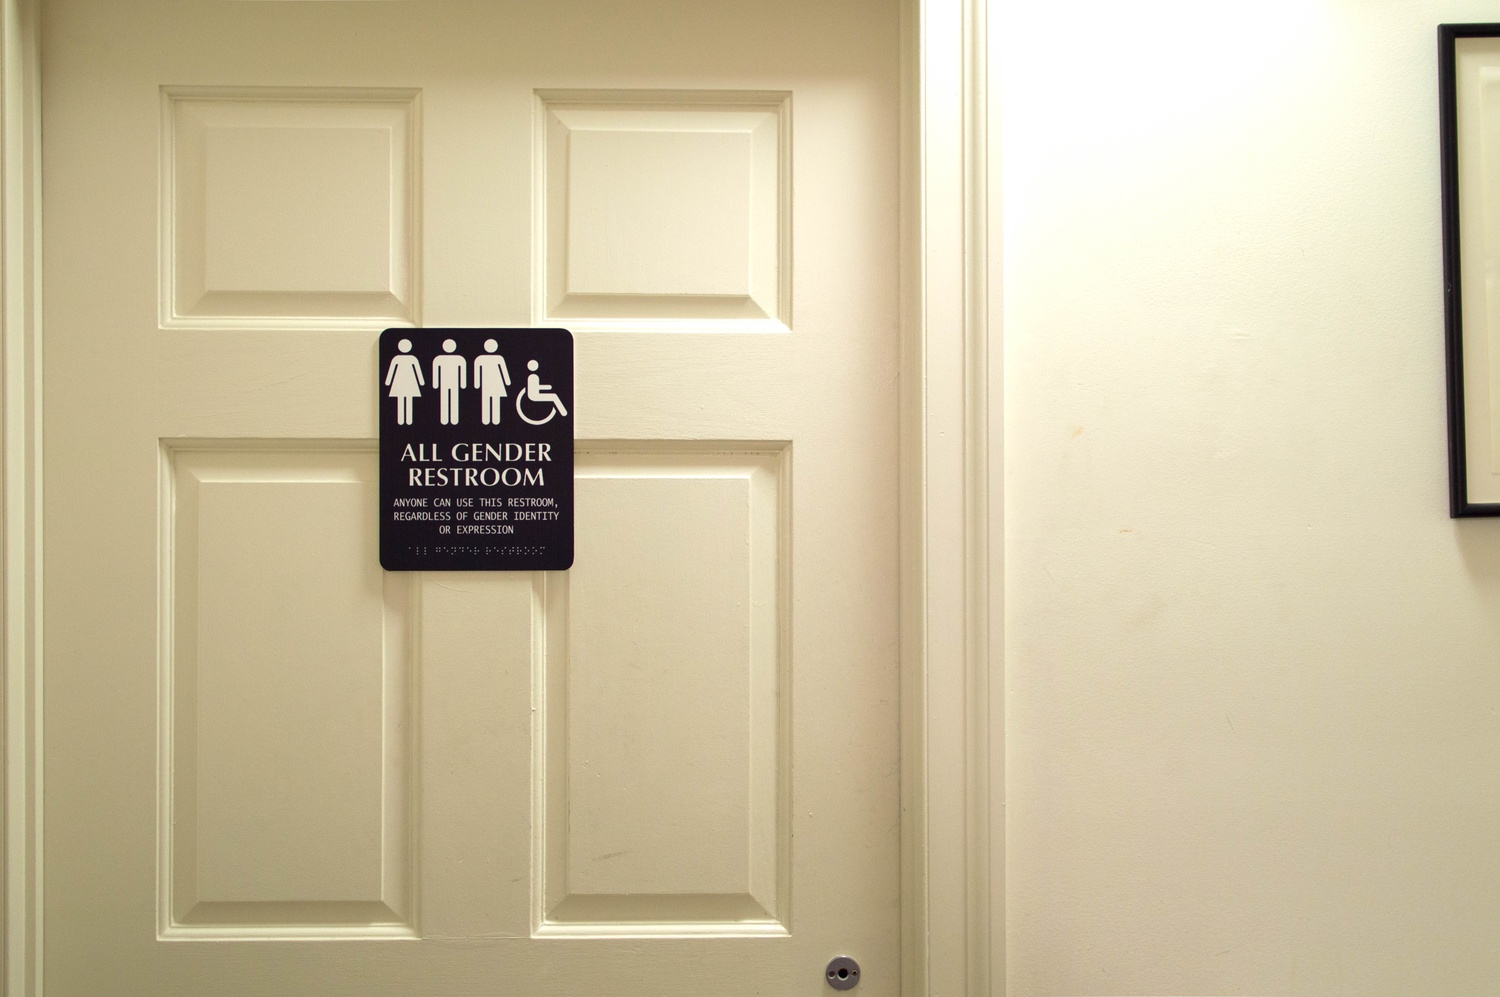 Adams House Introduces Gender Neutral Bathrooms News The Harvard Crimson